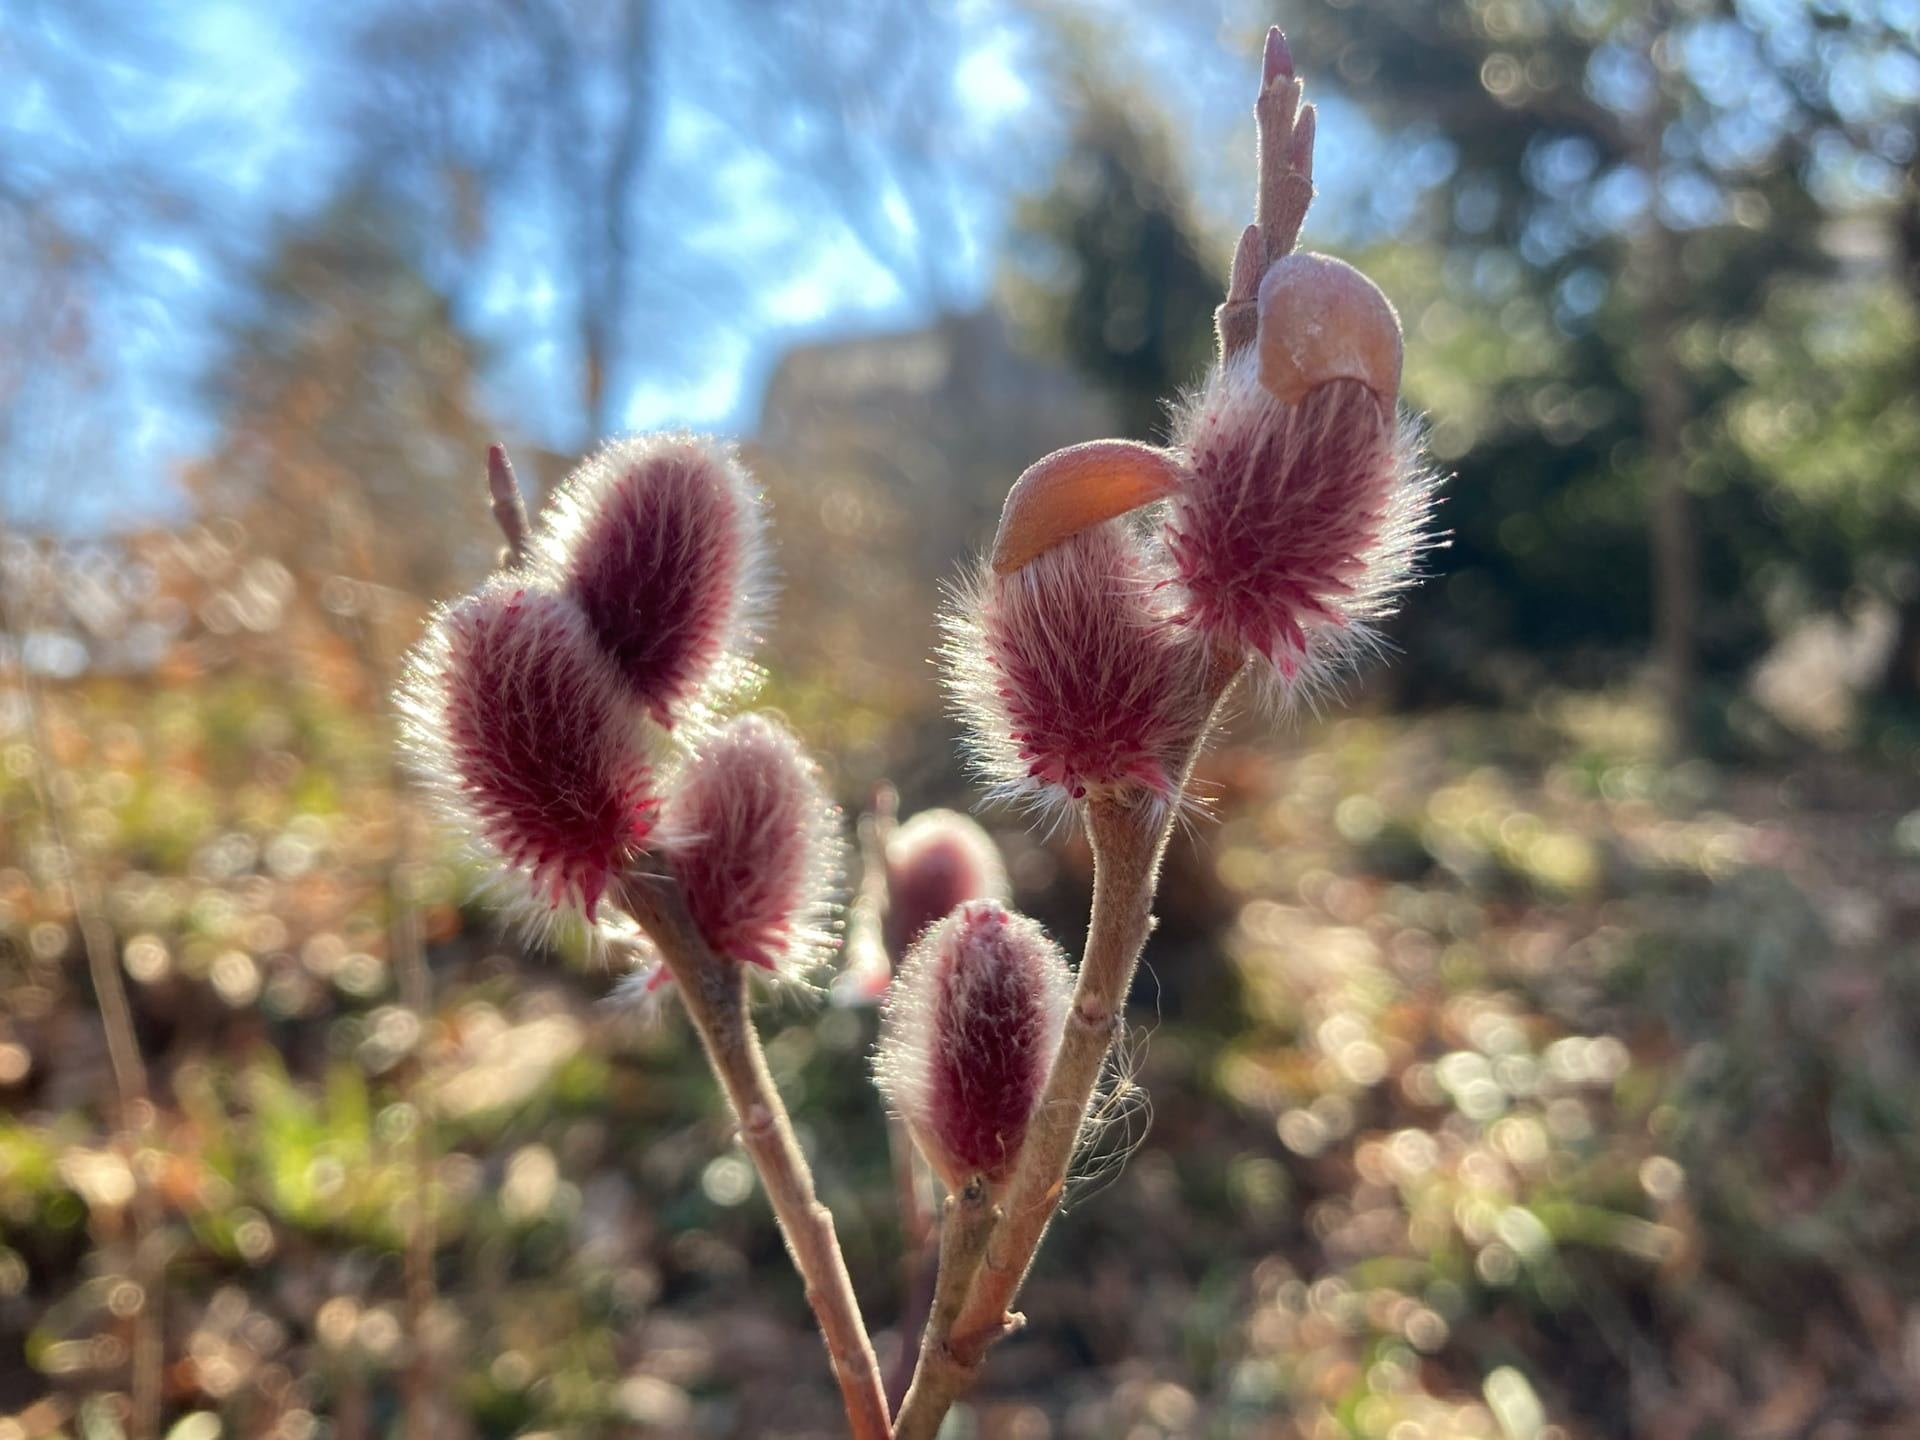 Salix gracilistyla 'Mt. Aso' backlight by the winter sun.